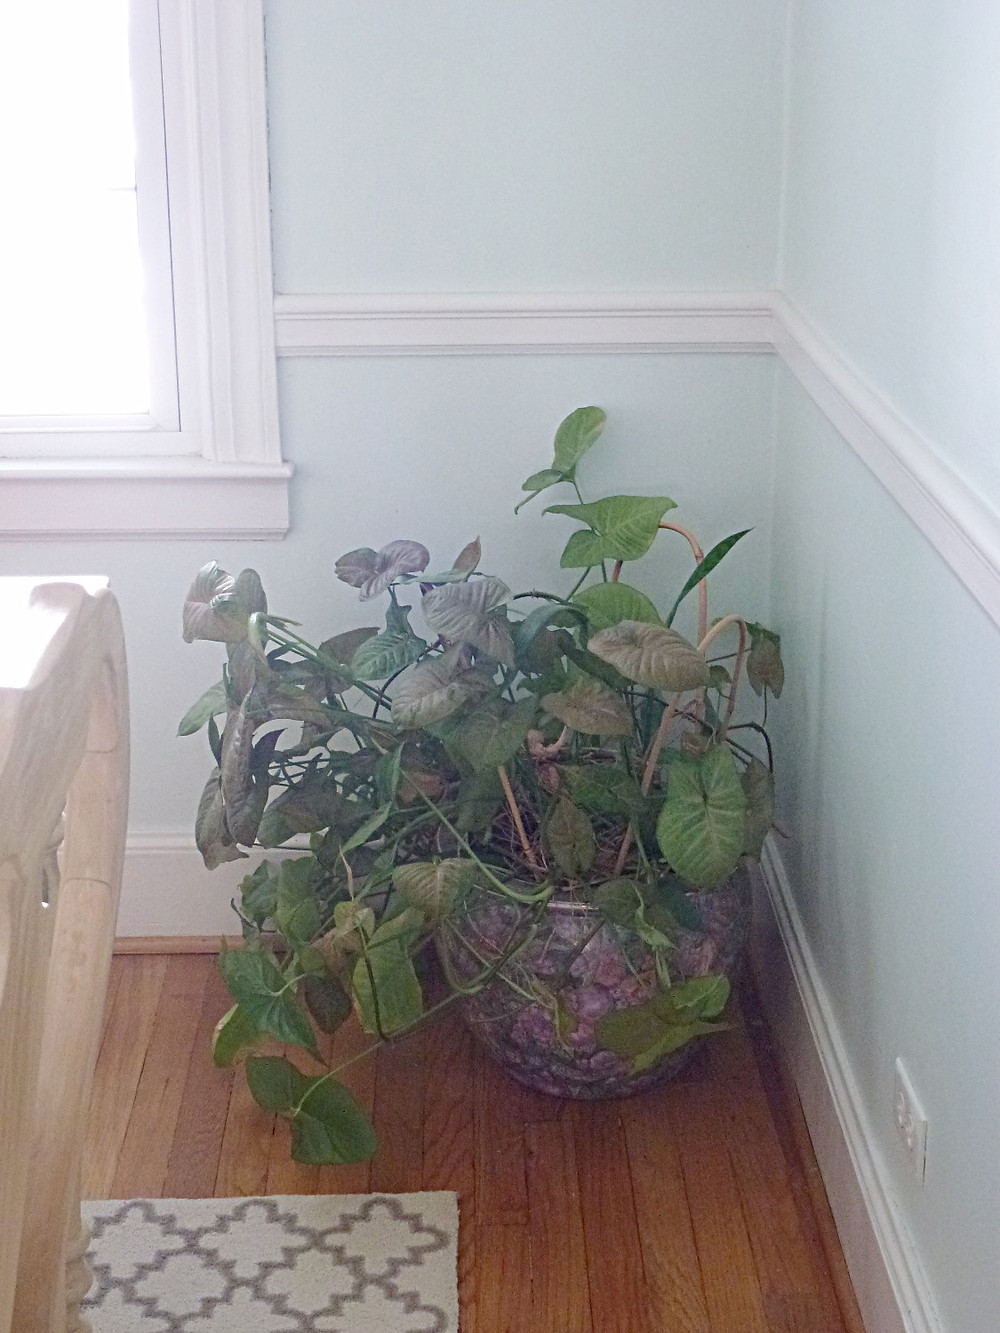 Mystery plant and pot